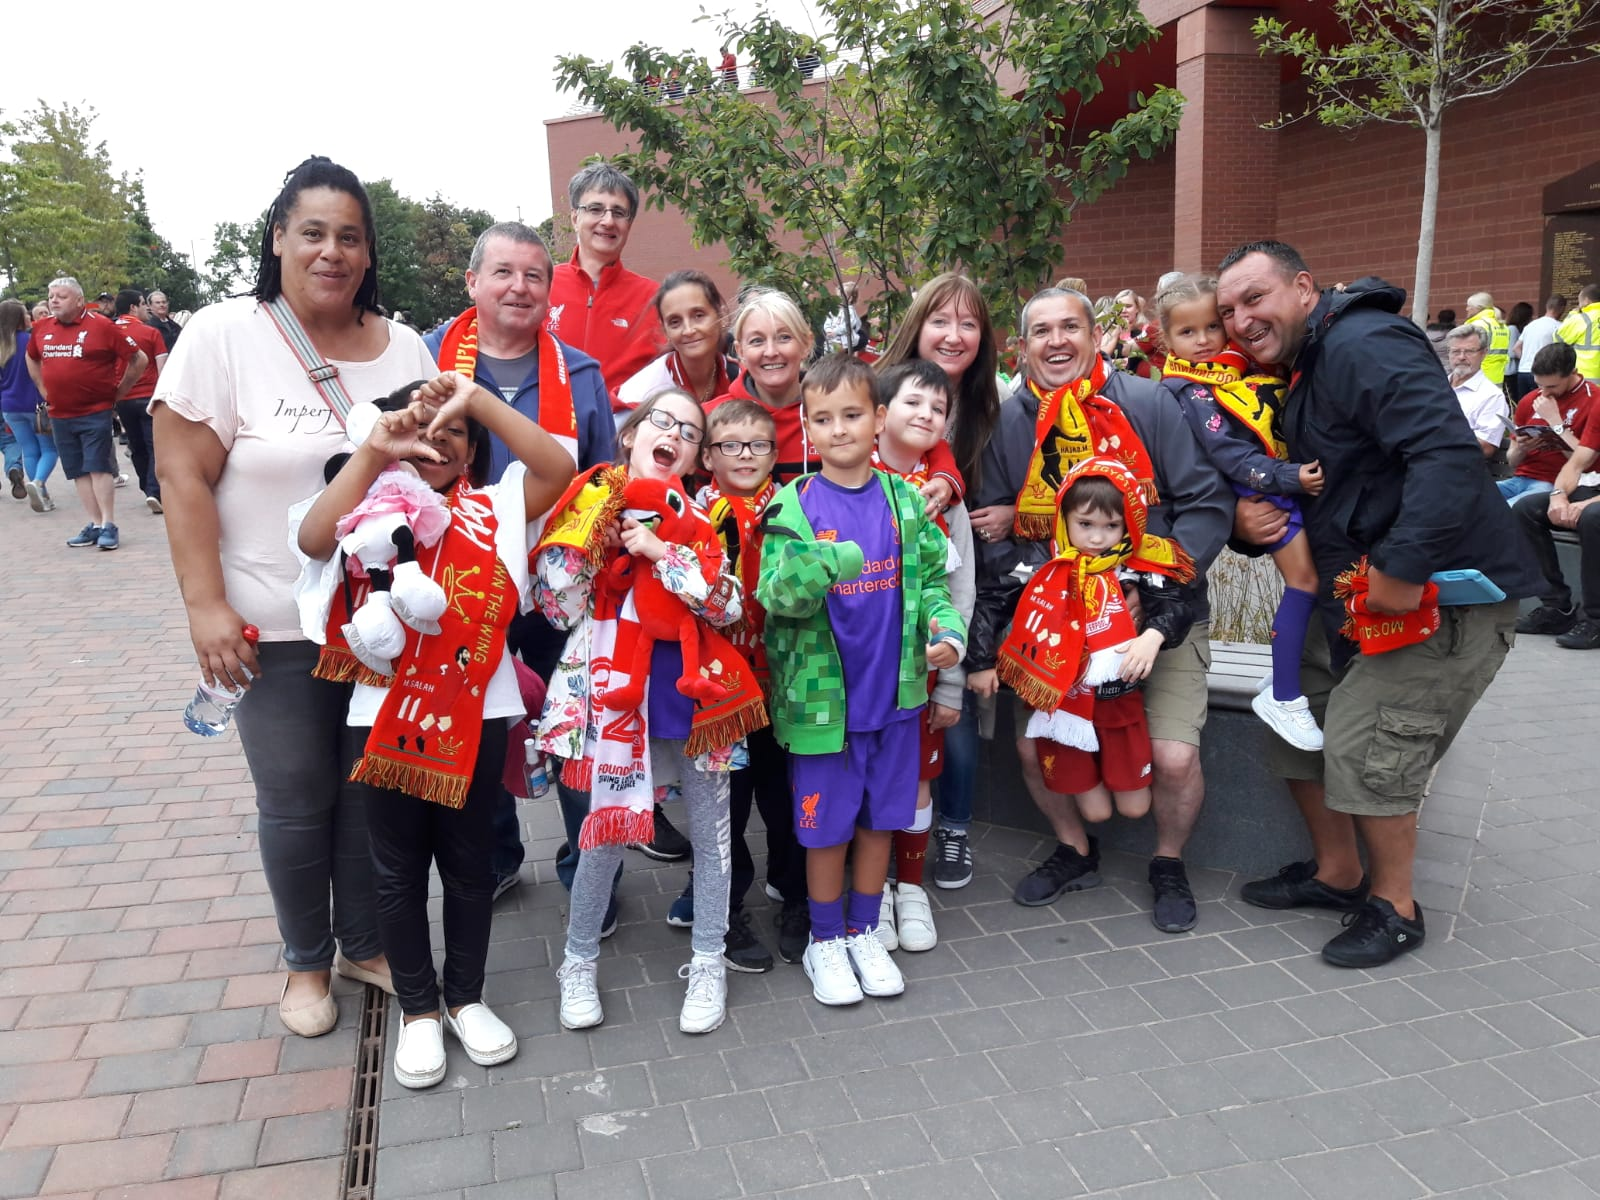 Millstead School's Visit To Anfield